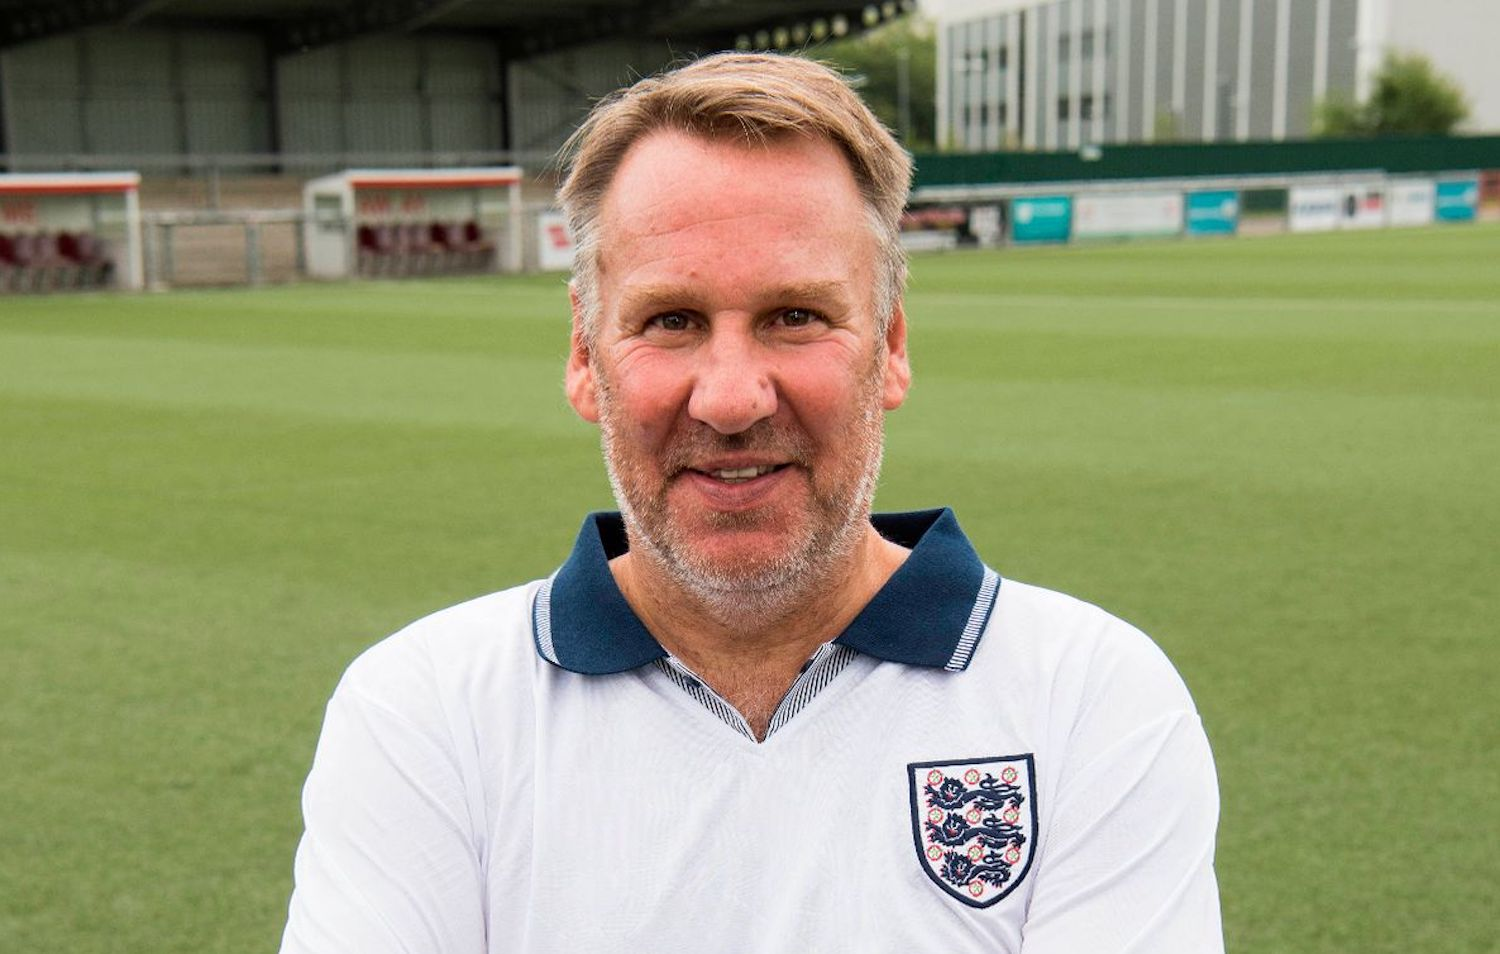 How did Paul Merson beat alcoholism? Arsenal legend reveals how he achieved sobriety